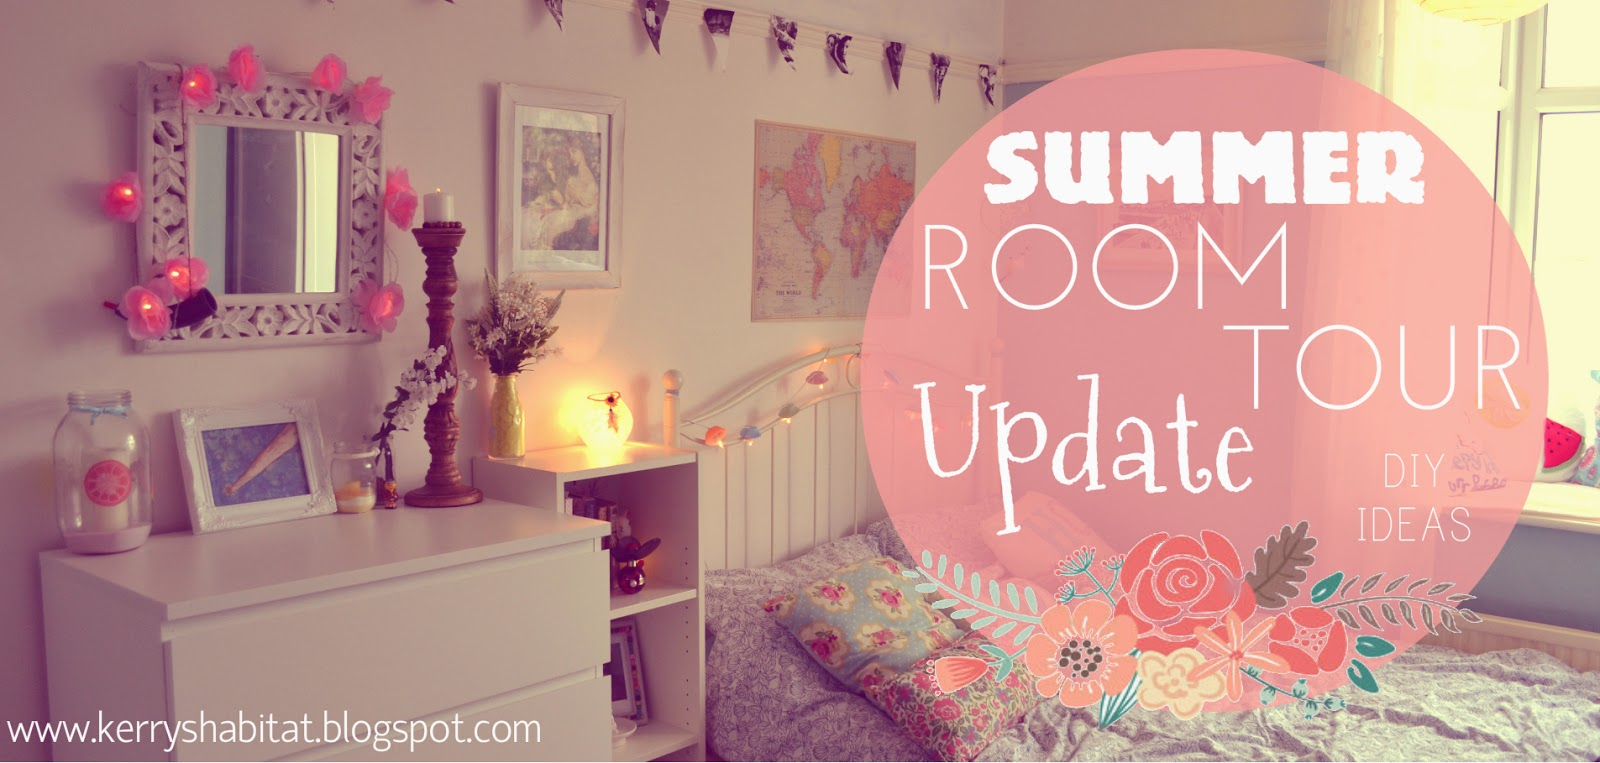 Kerry 39 s habitat summer room tour update geeky girly for Room decor ideas summer